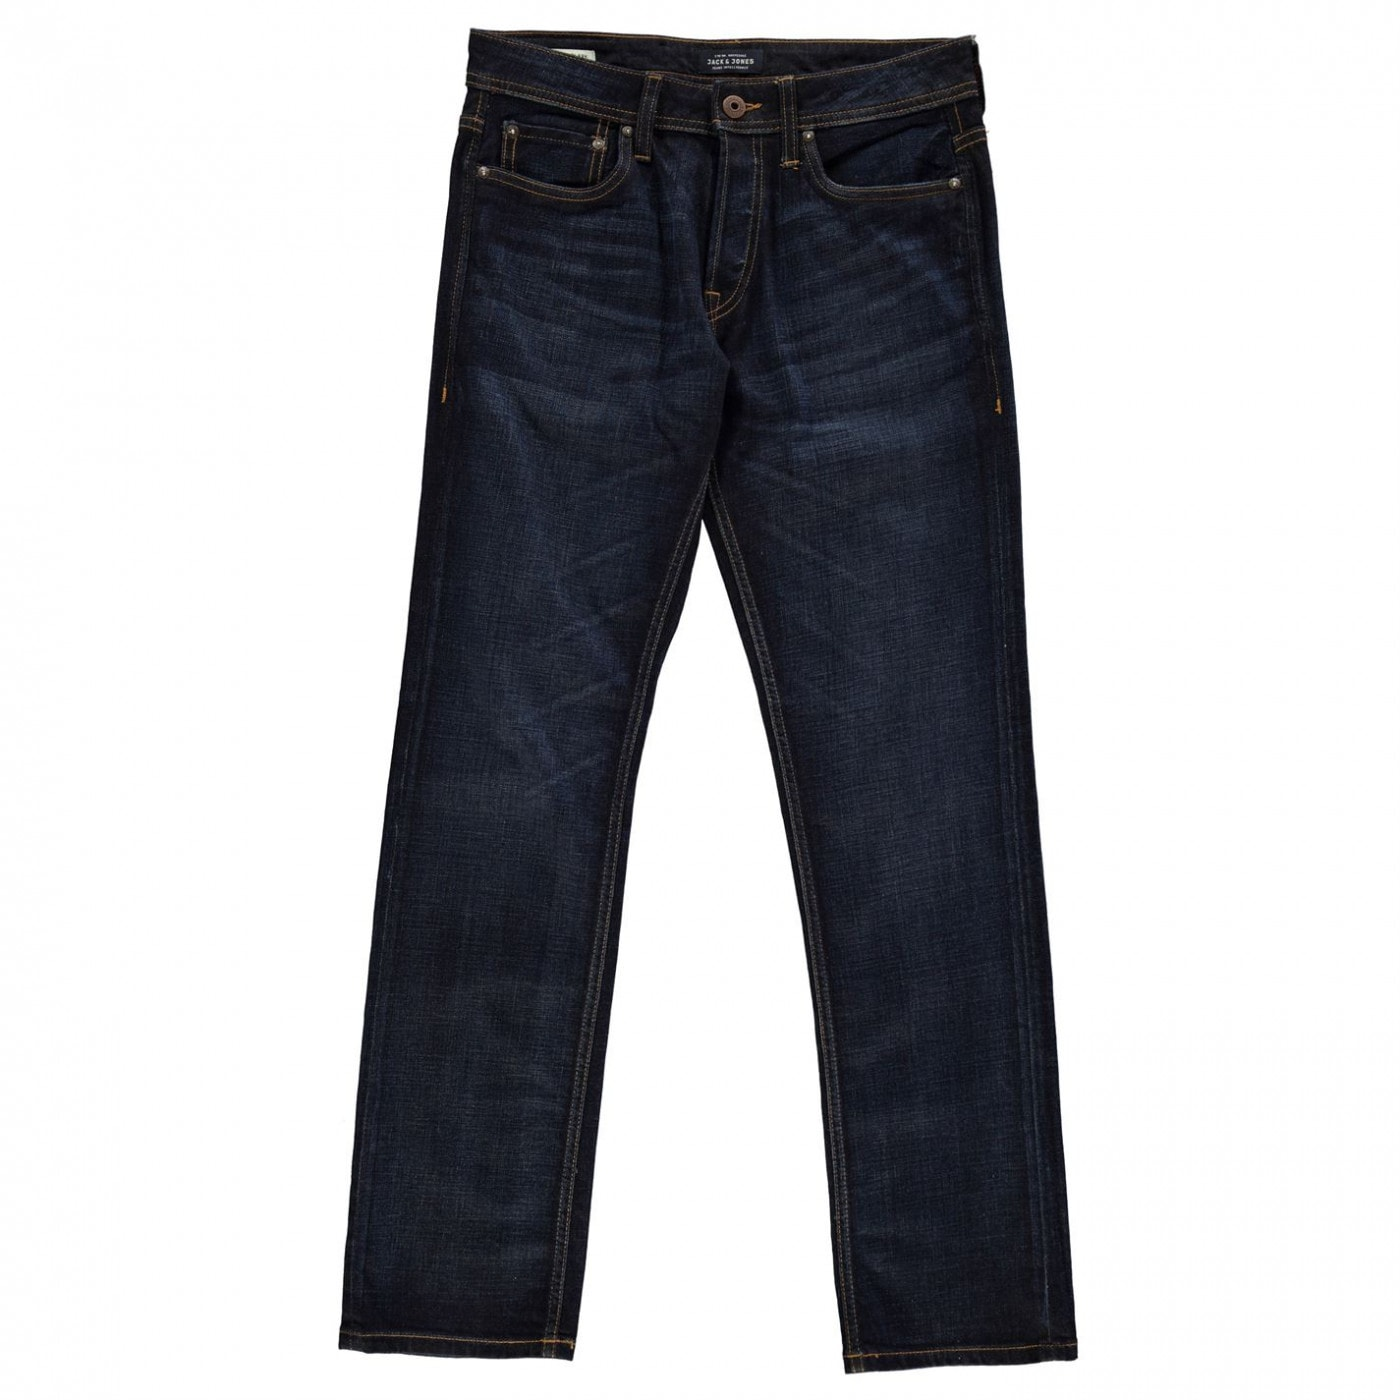 Nickelodeon Original Clark Jeans Mens